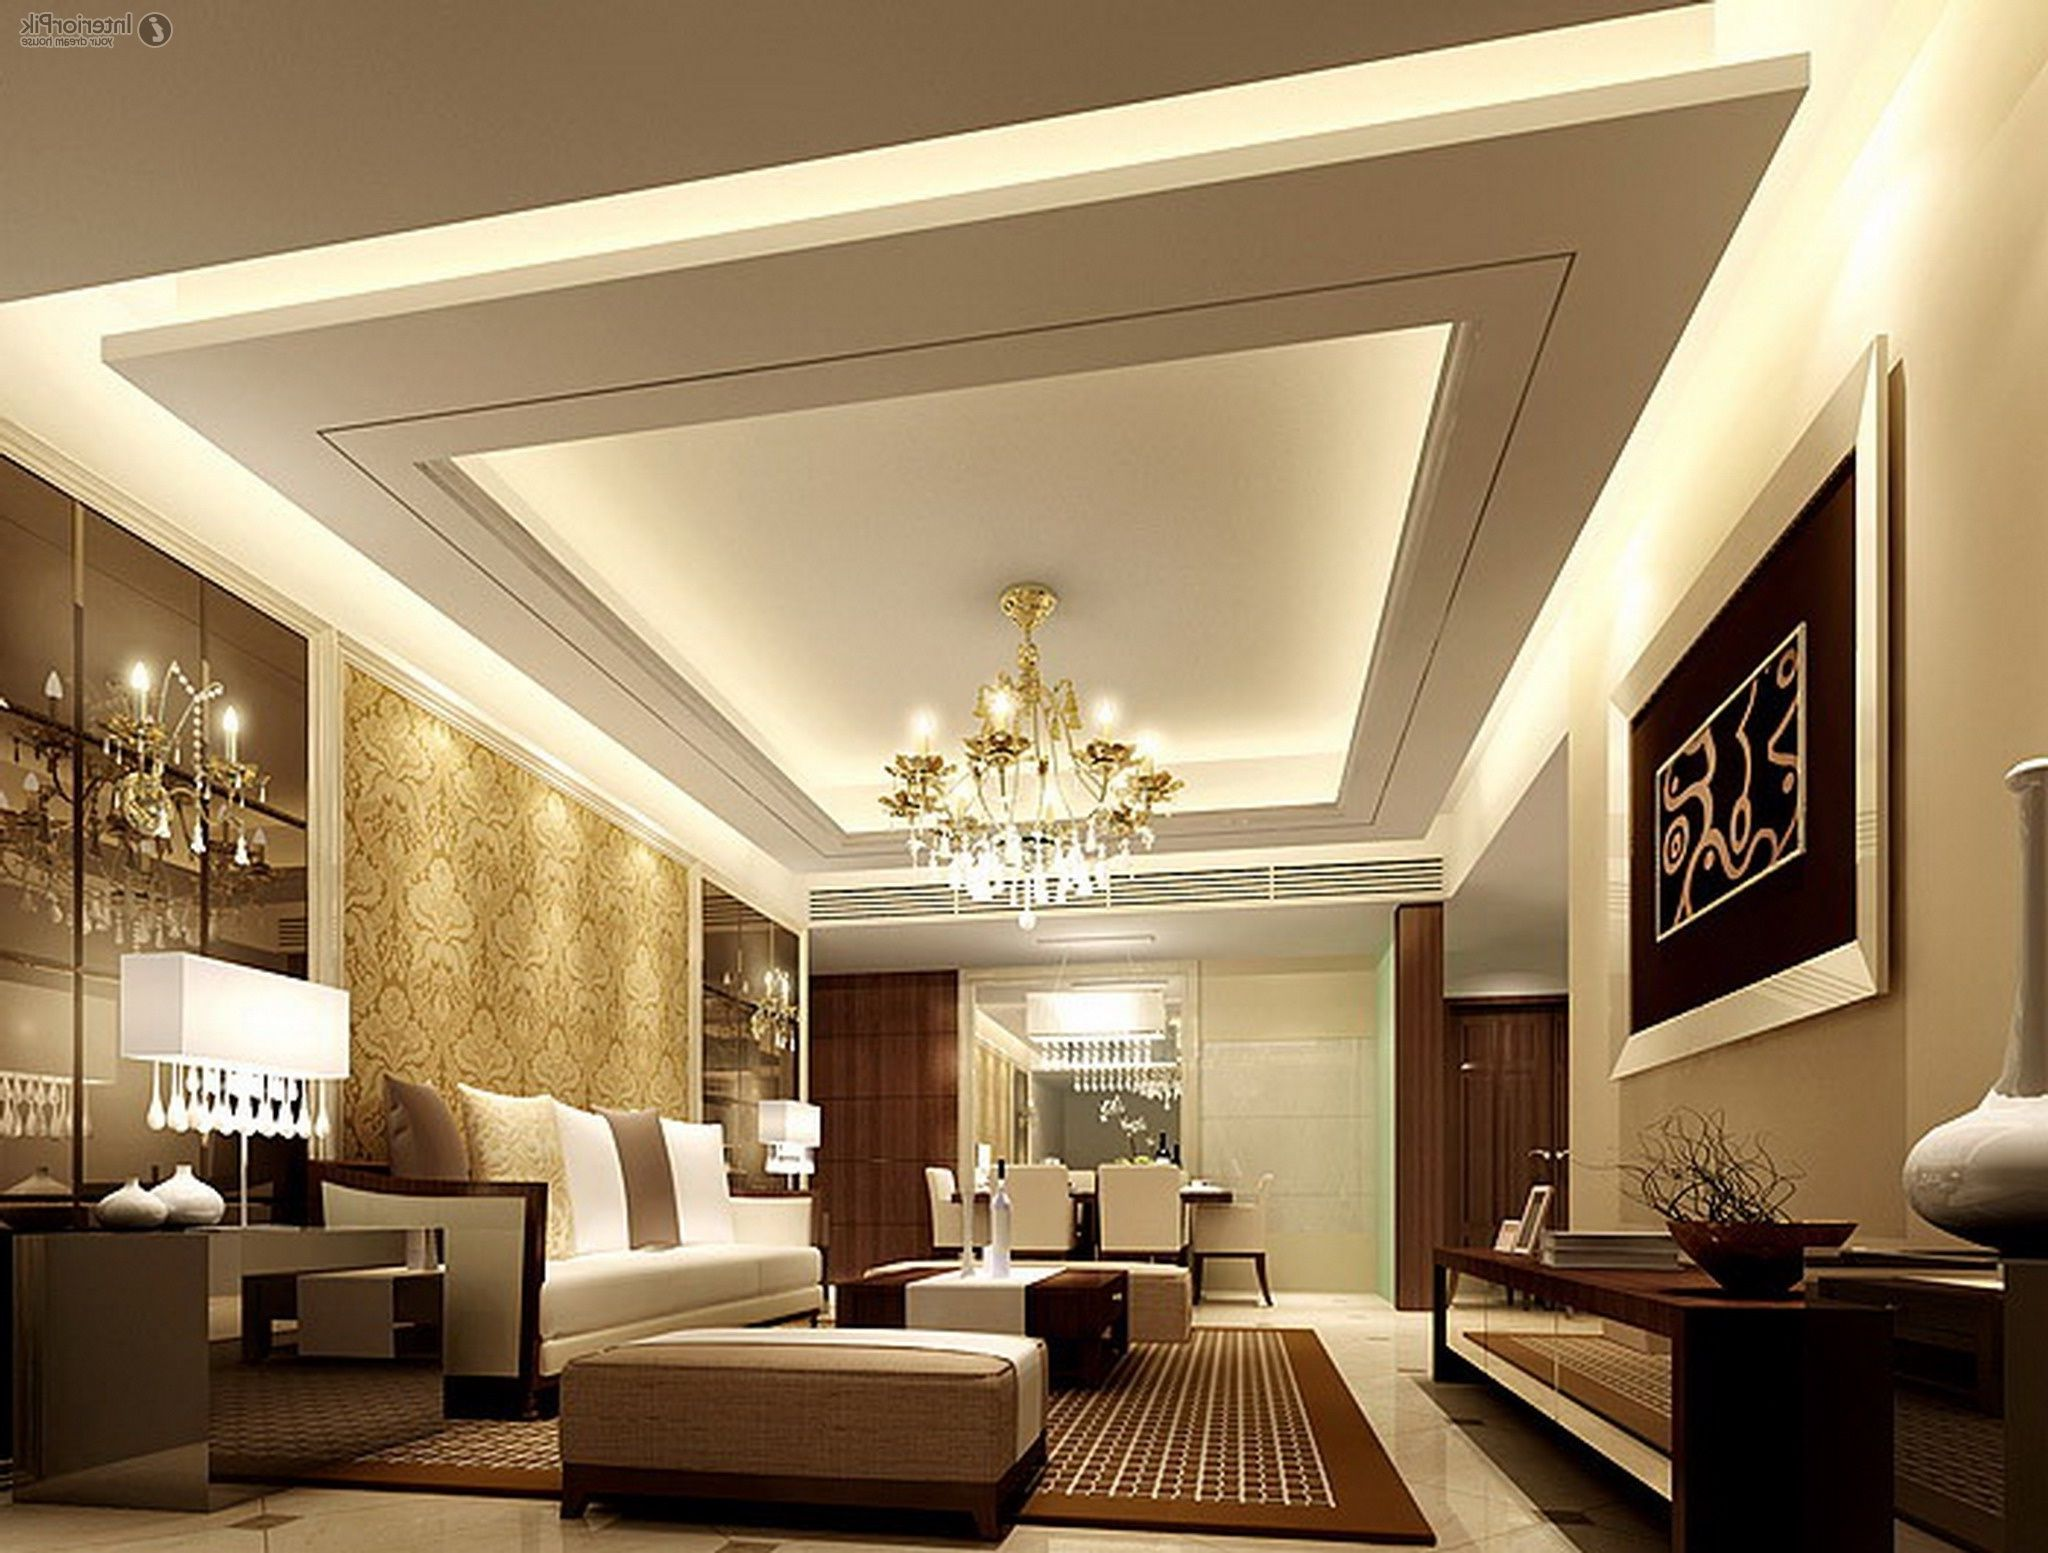 Ceiling Designs For Your Living Room Living Room Decor House